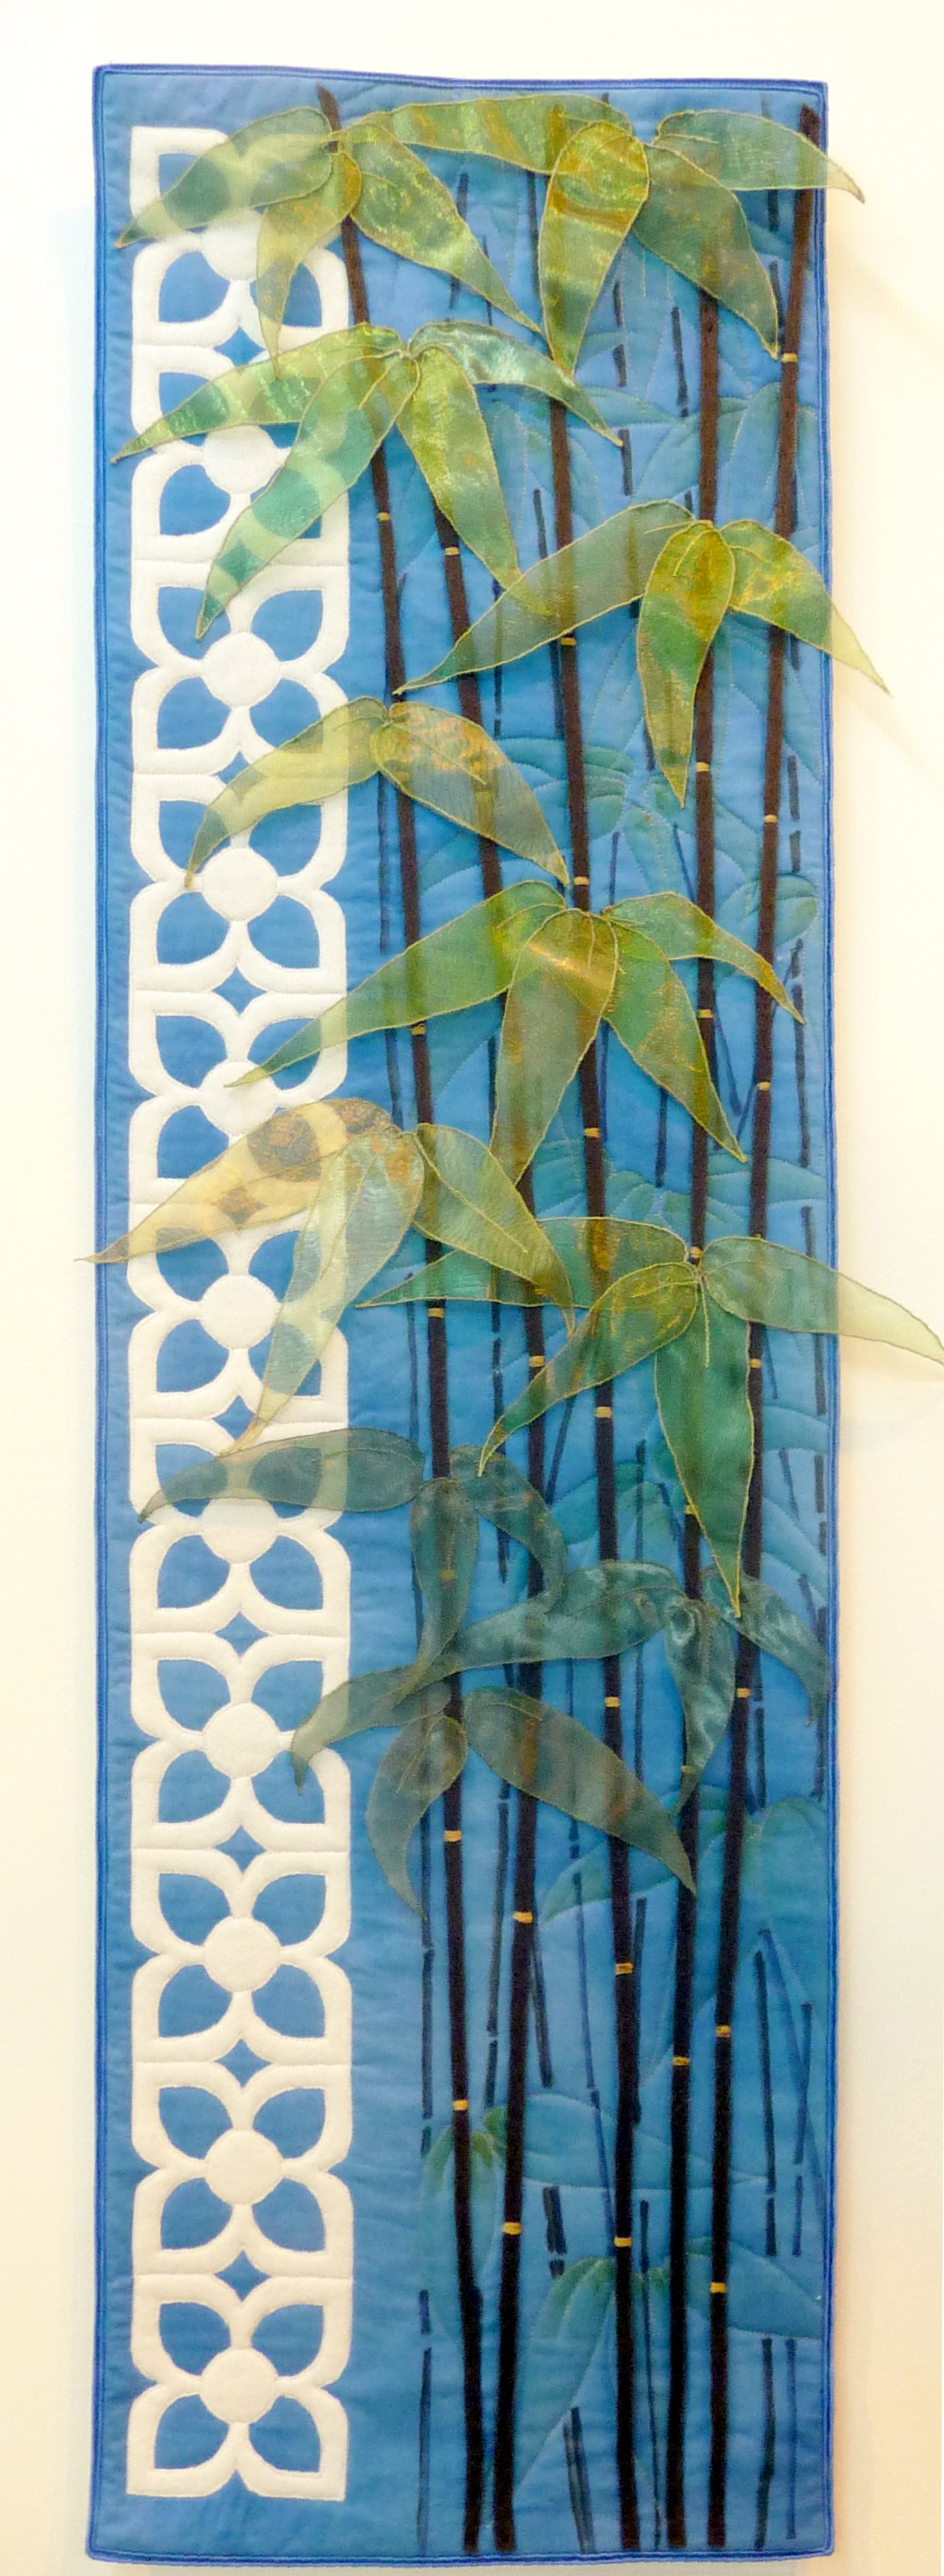 MAJORELLE GARDENS (Bamboo) by Pauline Barnes from Tangent Textiles